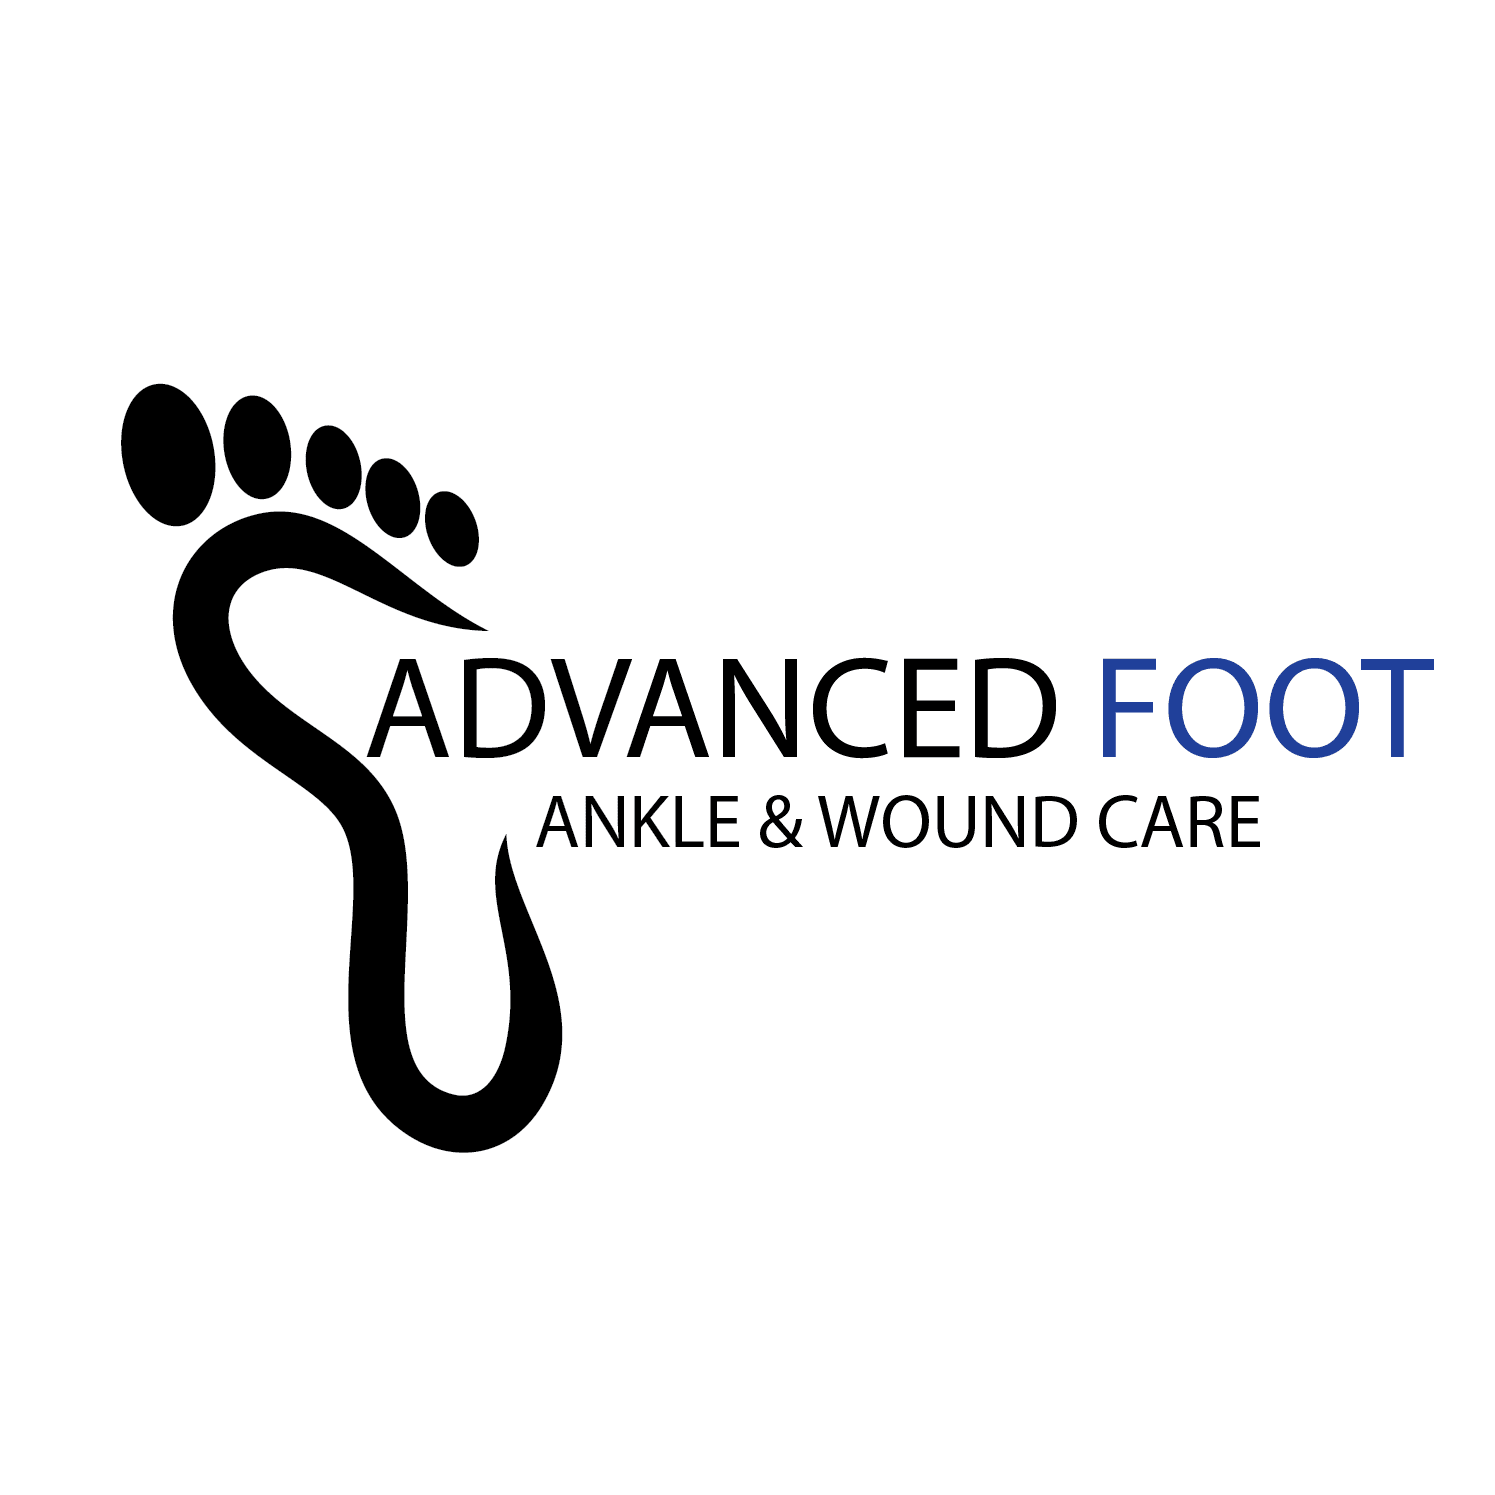 Advanced Foot, Ankle & Wound Care